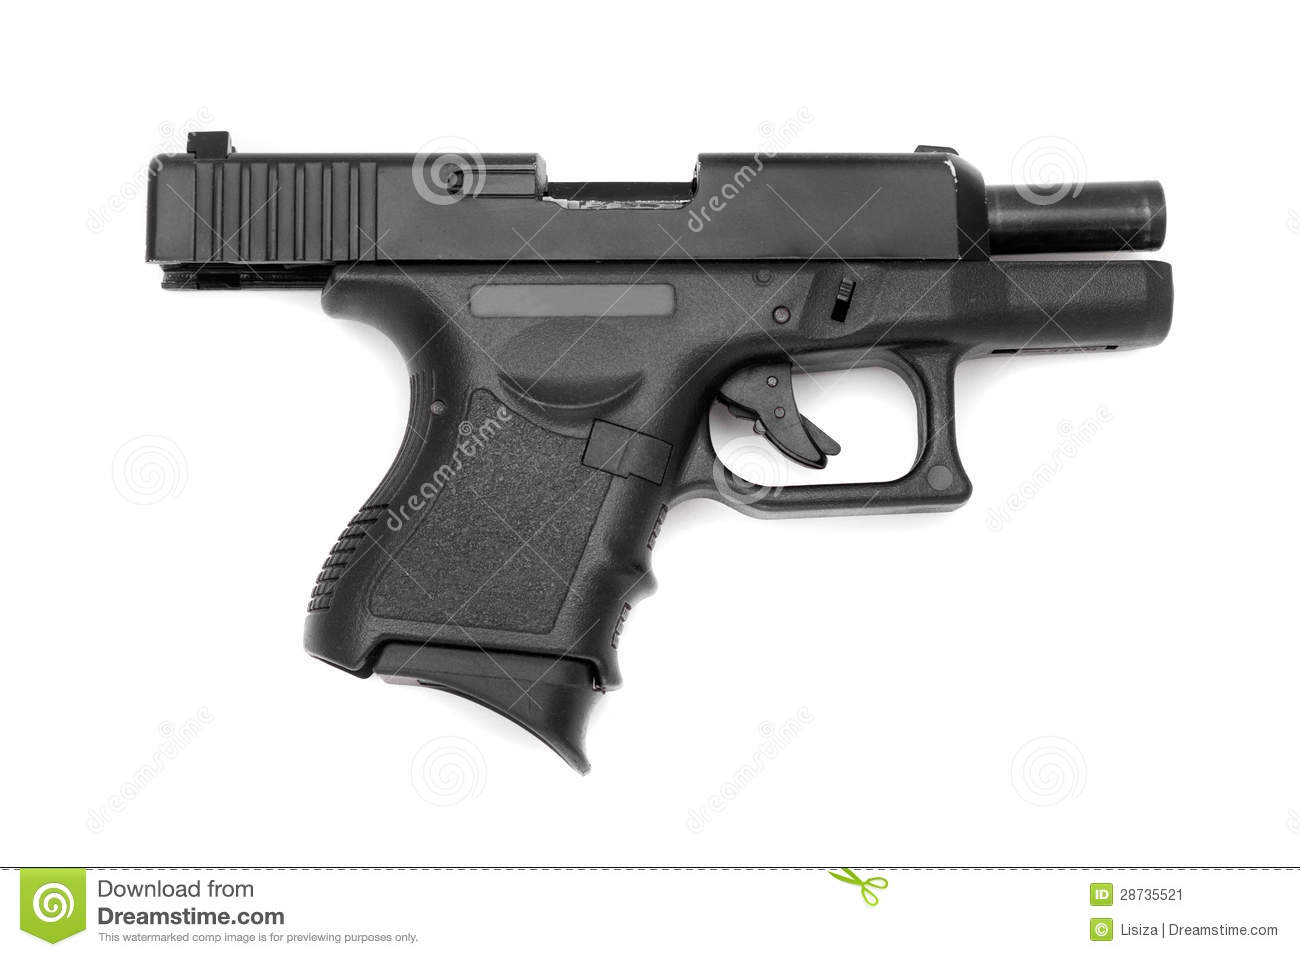 gun white background - photo #21